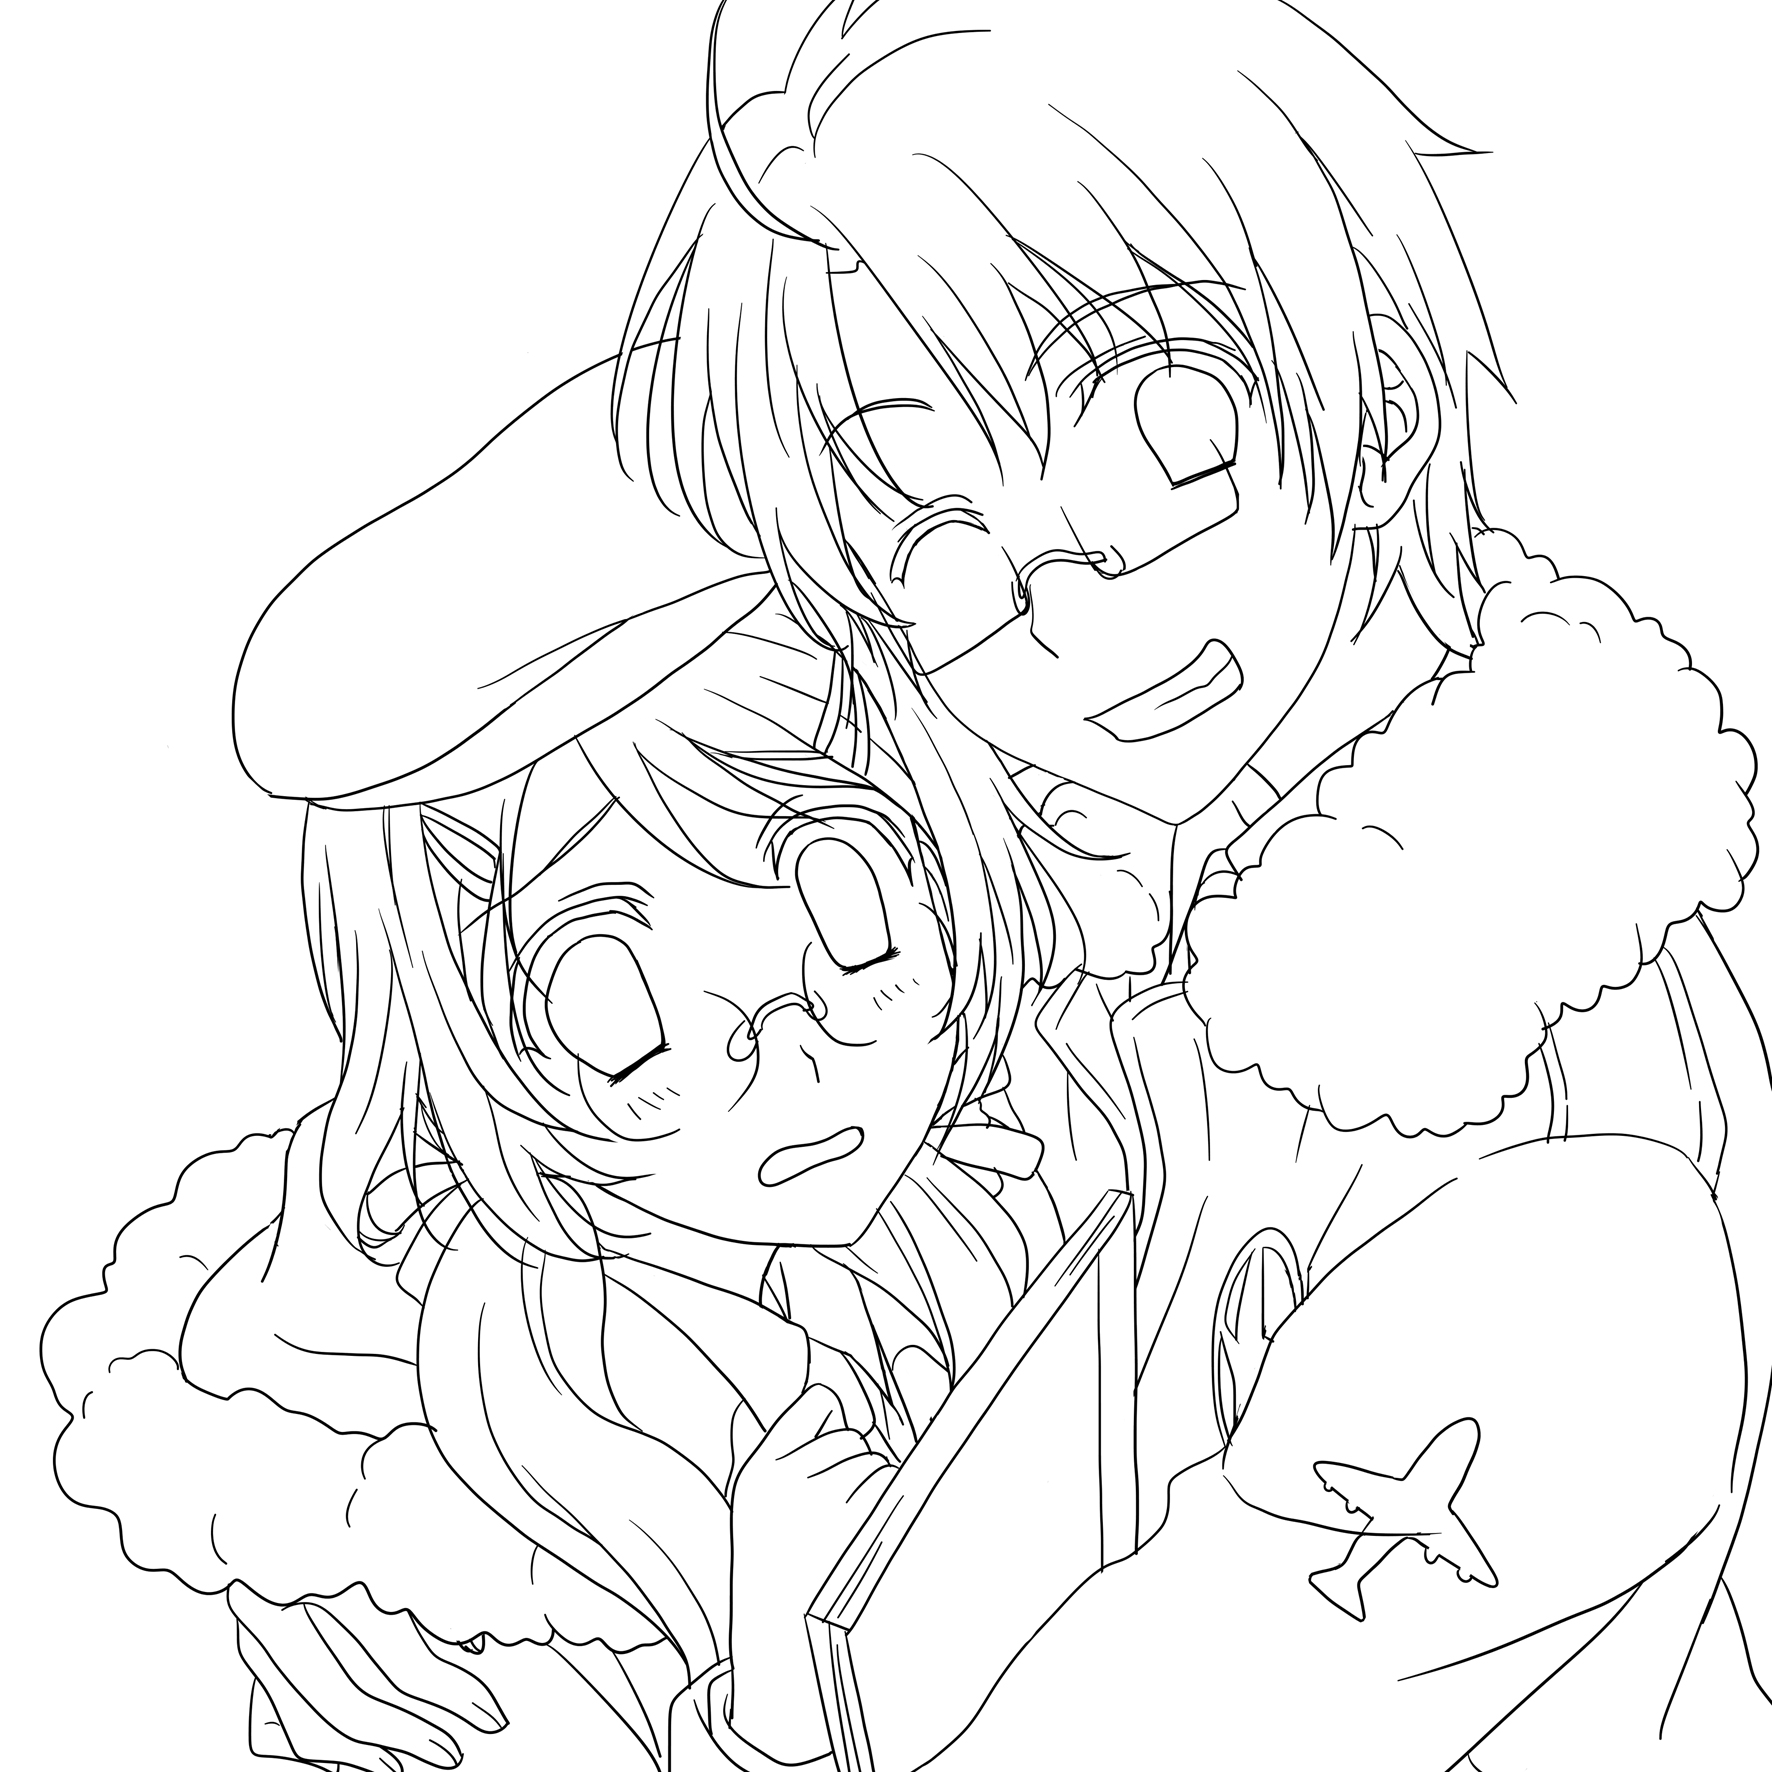 anime hetalia coloring pages - photo#4